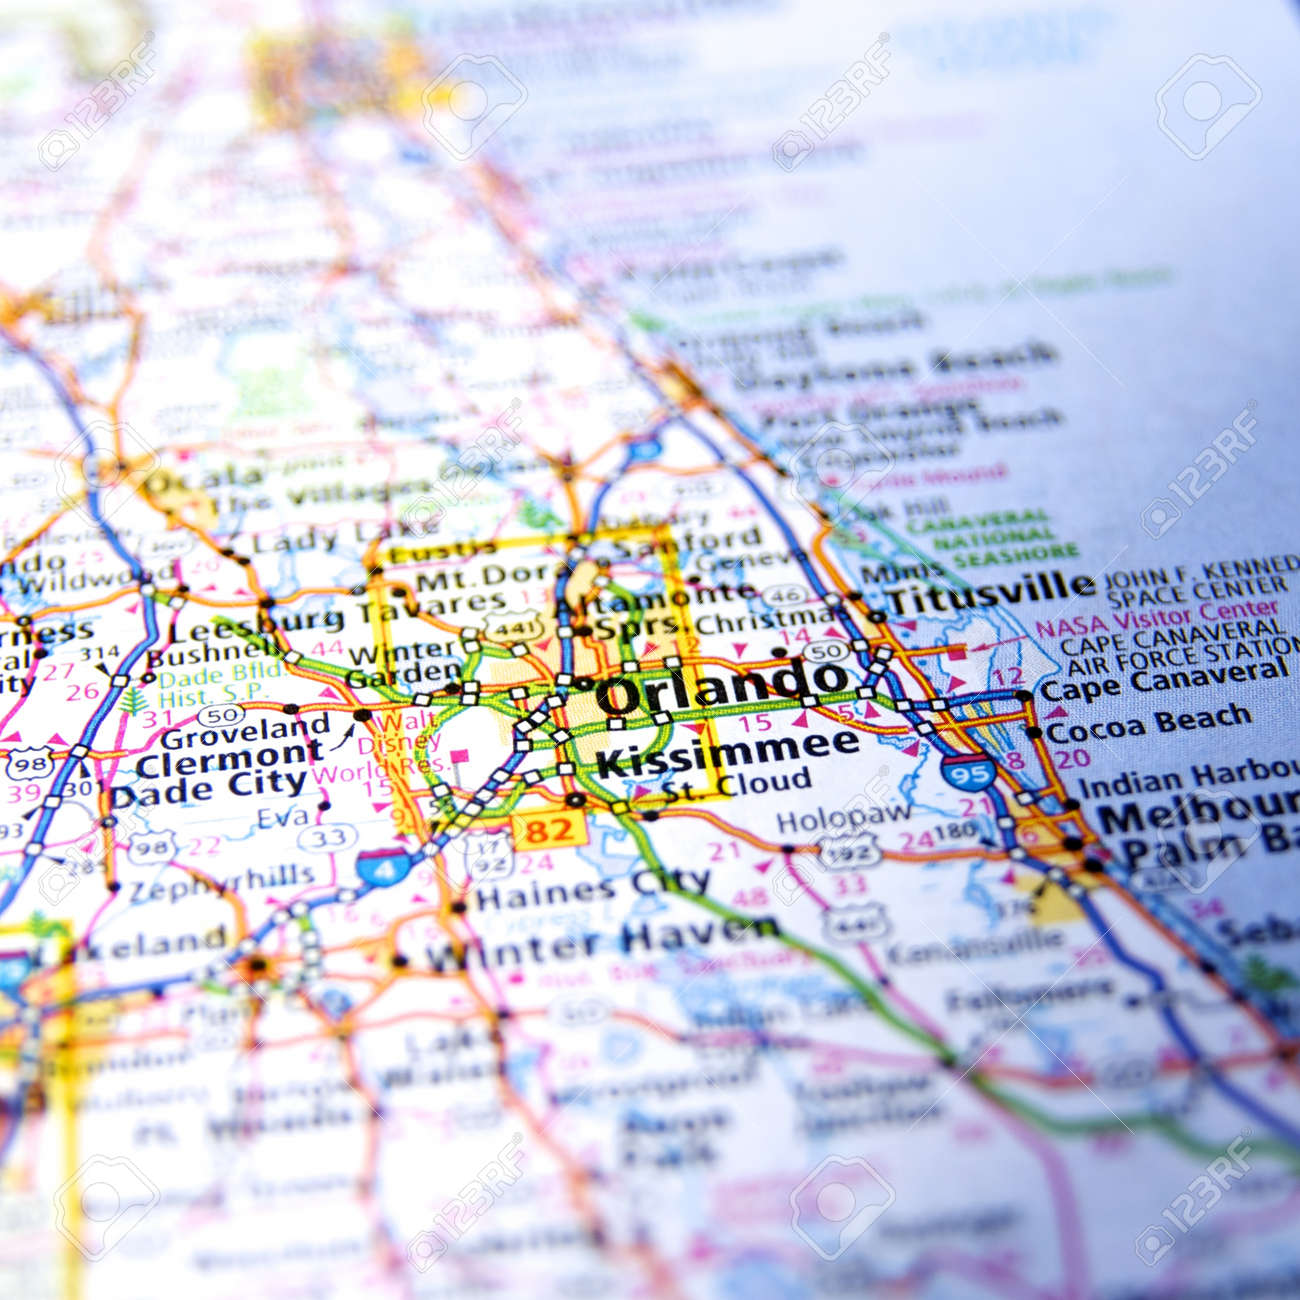 Map Orlando Florida.Close Up Map Orlando Florida Stock Photo Picture And Royalty Free